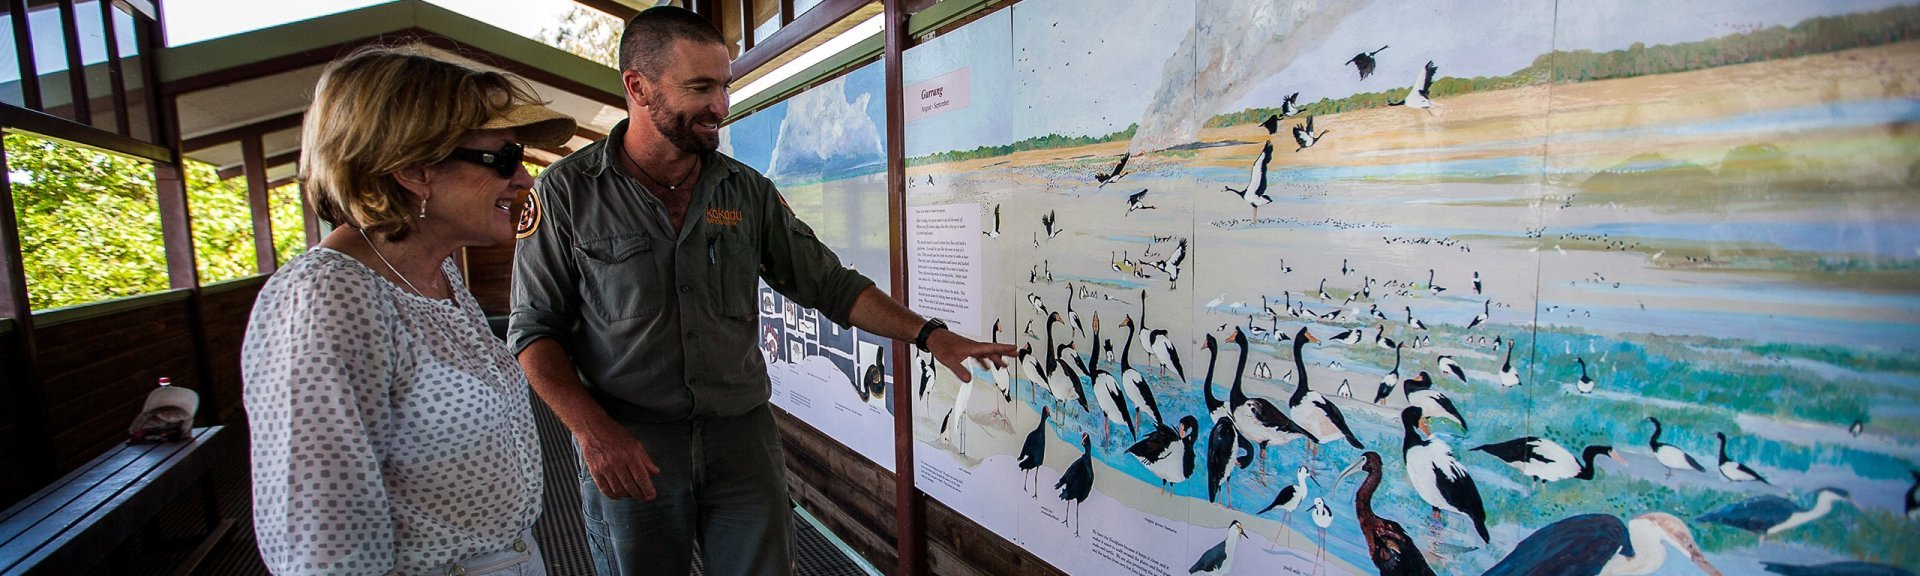 A ranger and visitor viewing the mural at Mamukala Bird Hide